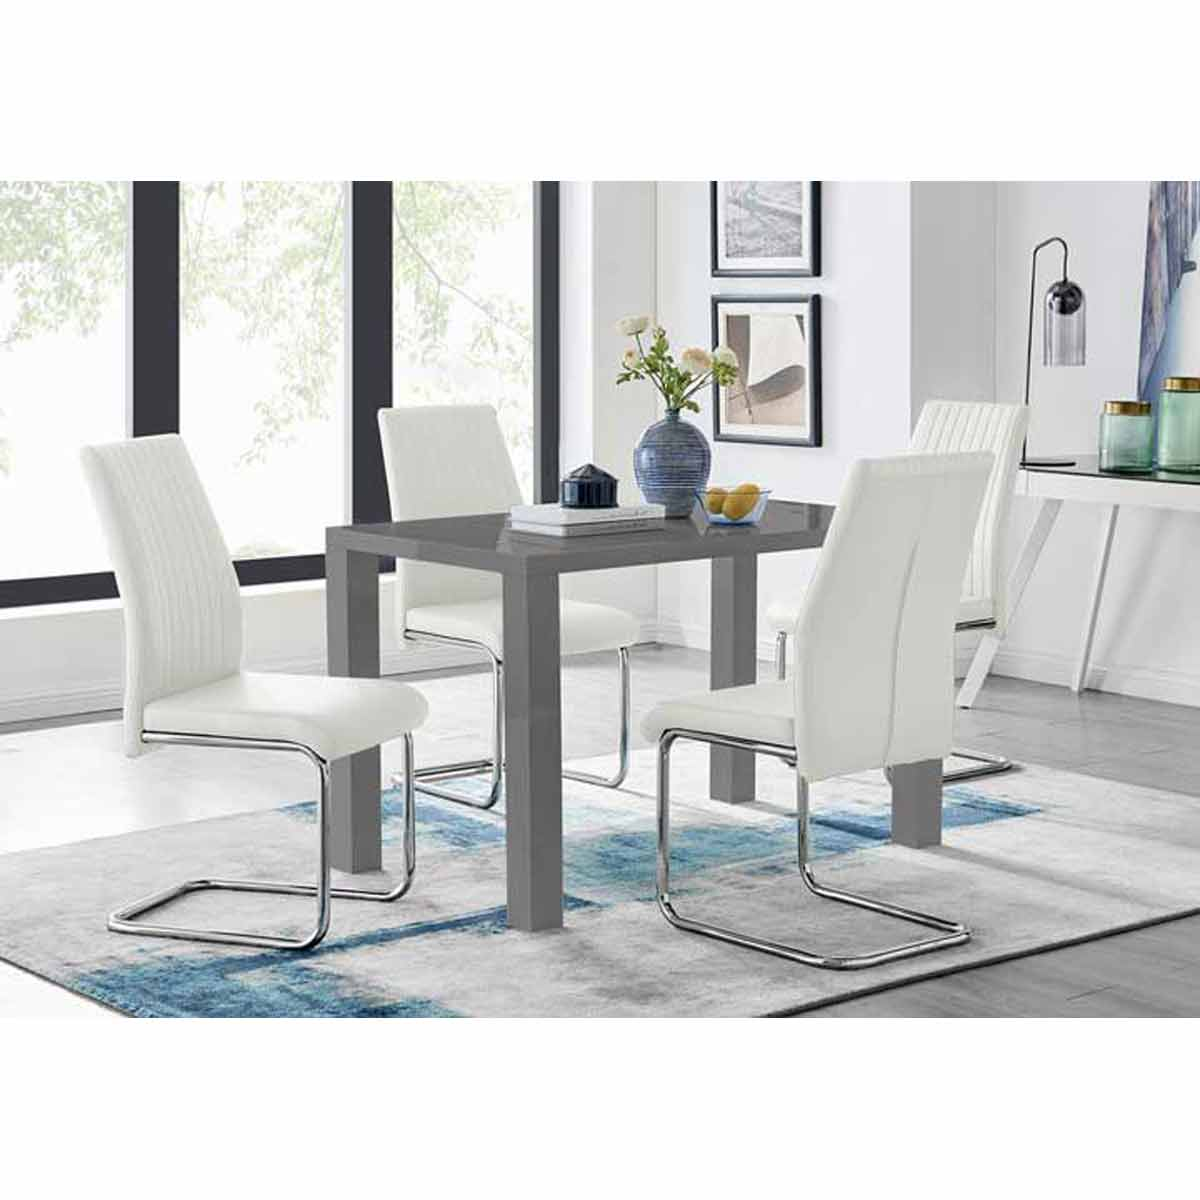 Furniture Box Pivero Grey High Gloss Dining Table And 4 White Lorenzo Chairs Set